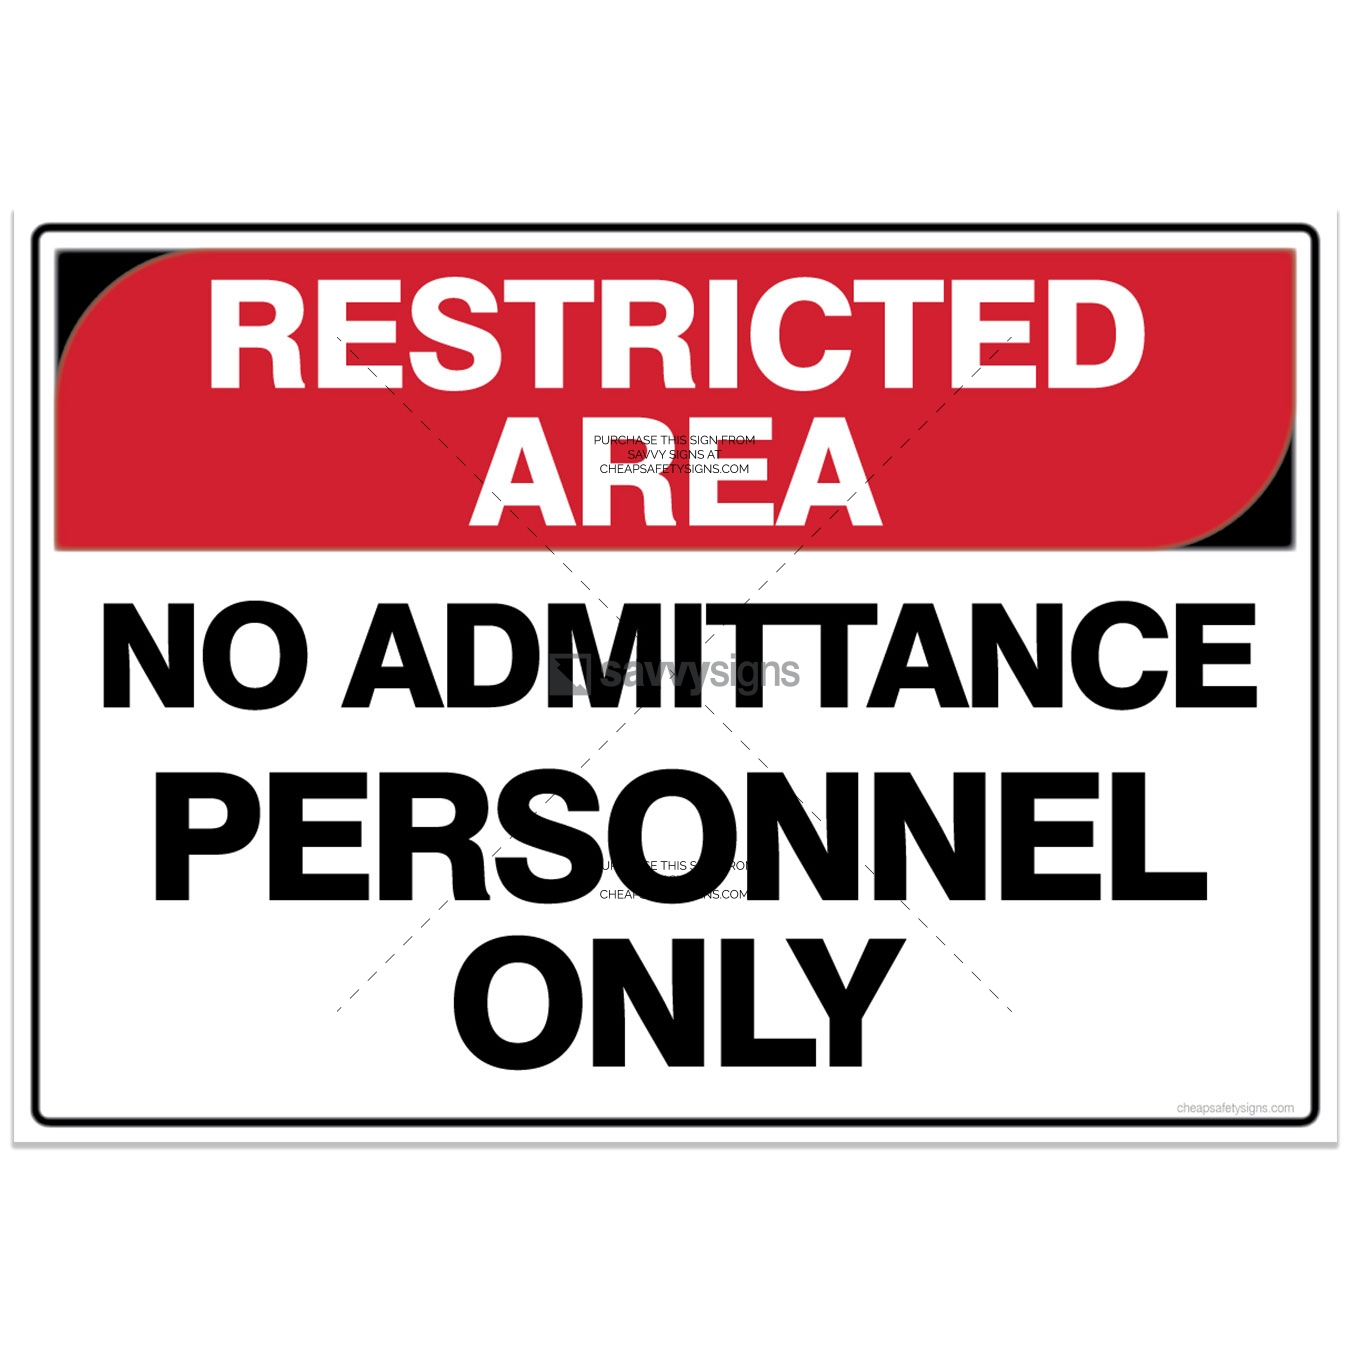 SSRES3021-RESTRICTED-AREA-Workplace-Safety-Signs_Savvy-Signs_v2